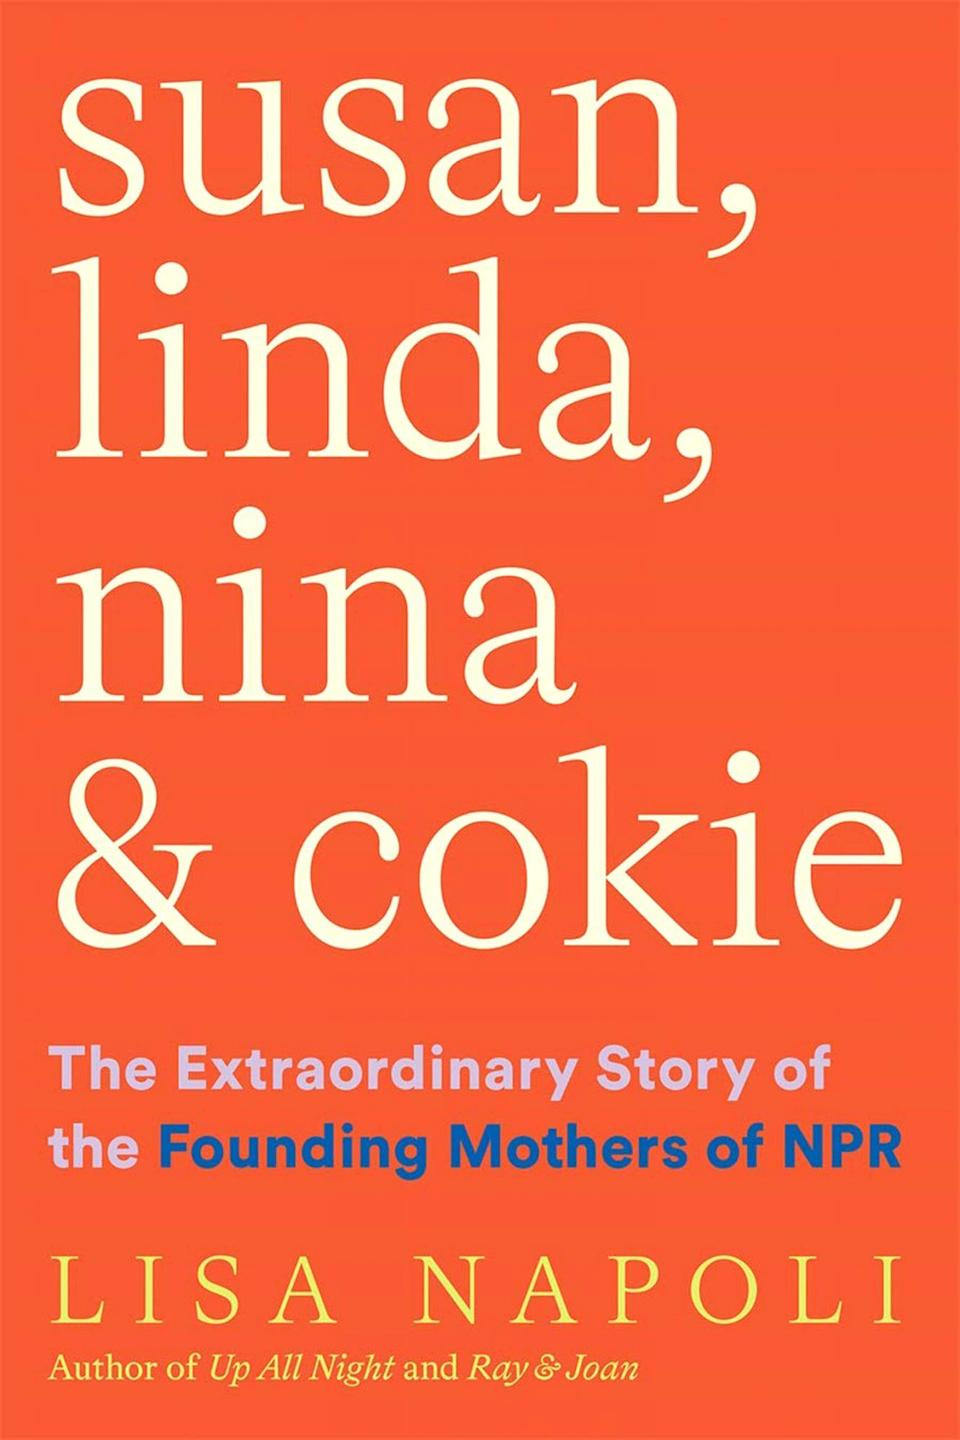 <p>The journalist pens a love letter of sorts to the founding women of NPR, writing about Susan Stamberg, Linda Wertheimer, Nina Totenberg, and Cokie Roberts' monumental careers at the broadcast company and the many ways they made history. (April 13)</p>